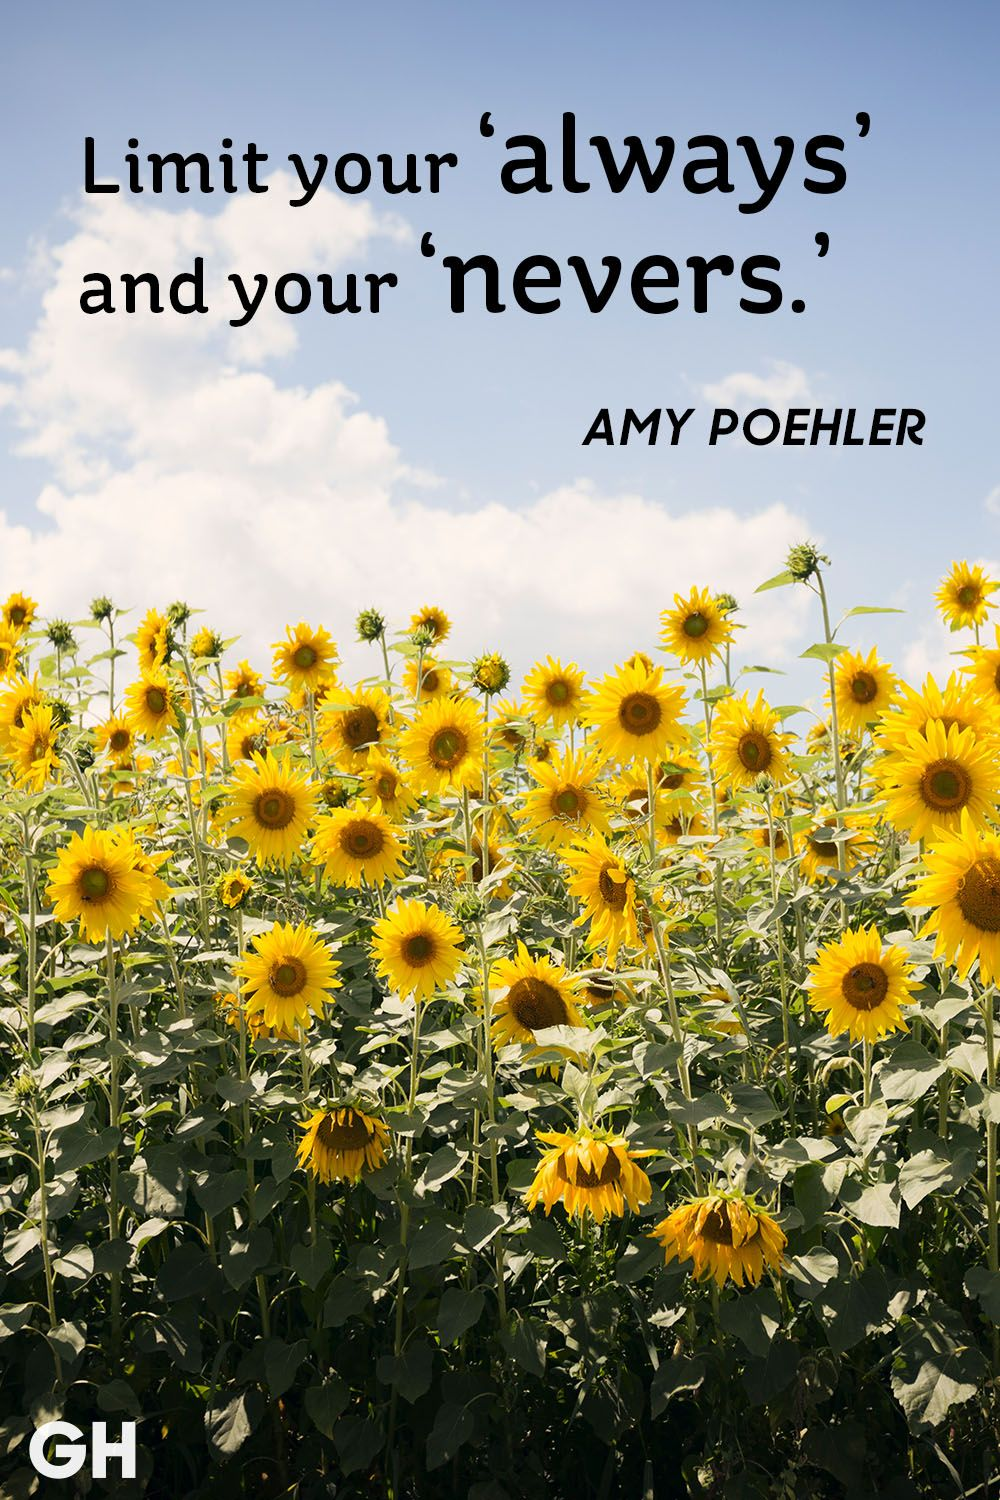 amy poehler inspirational quote